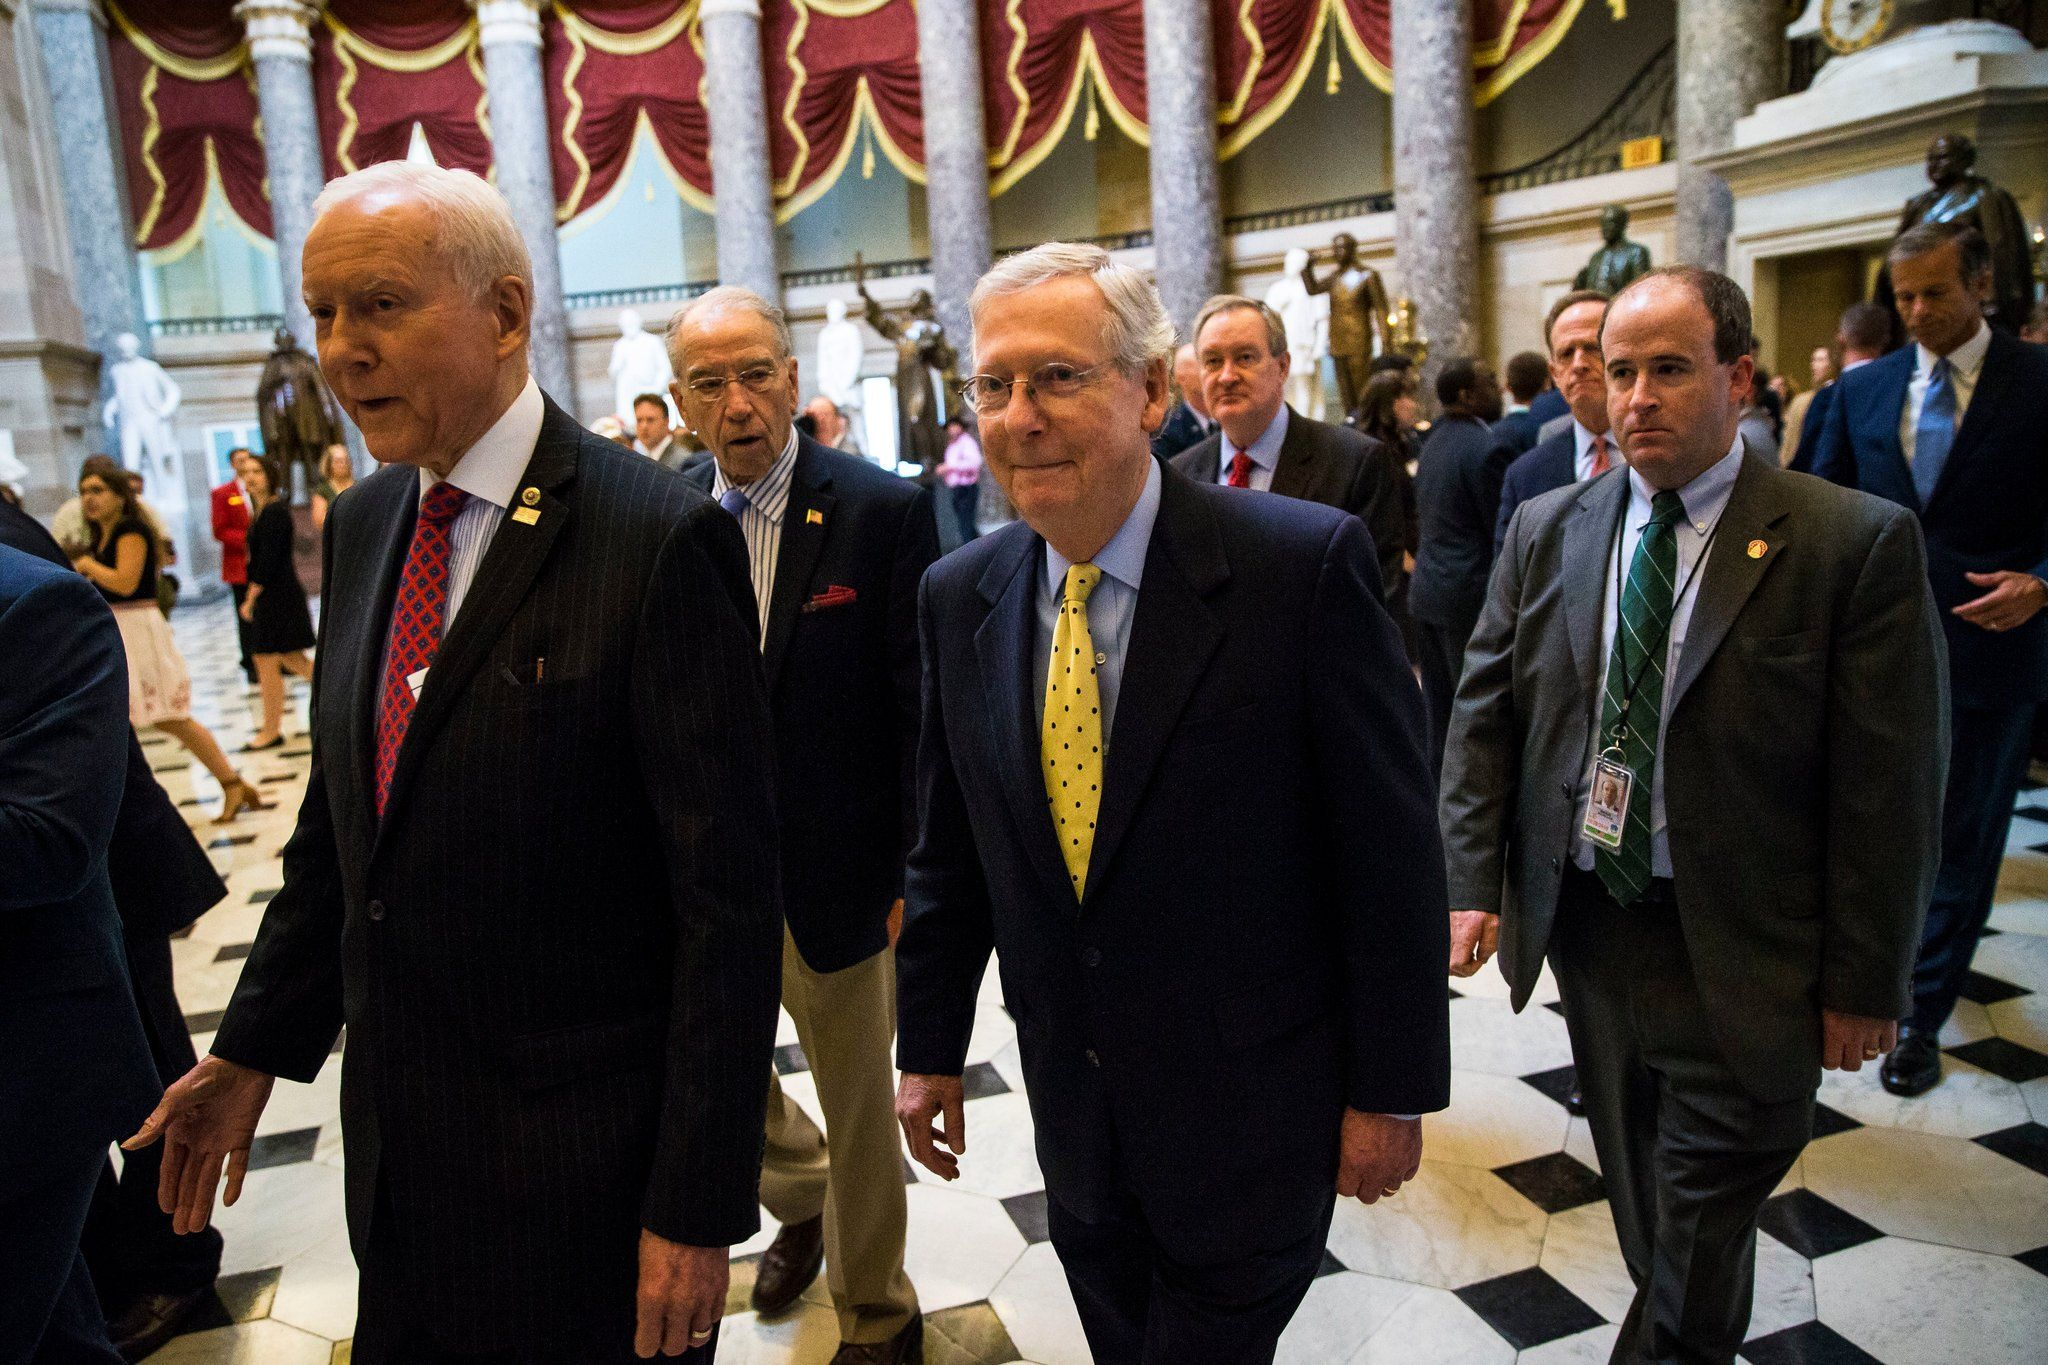 The Senate will diverge from the House legislation in several key ways, including eliminating the ability to deduct state and local taxes and scaling back, rather than ending, the estate tax.